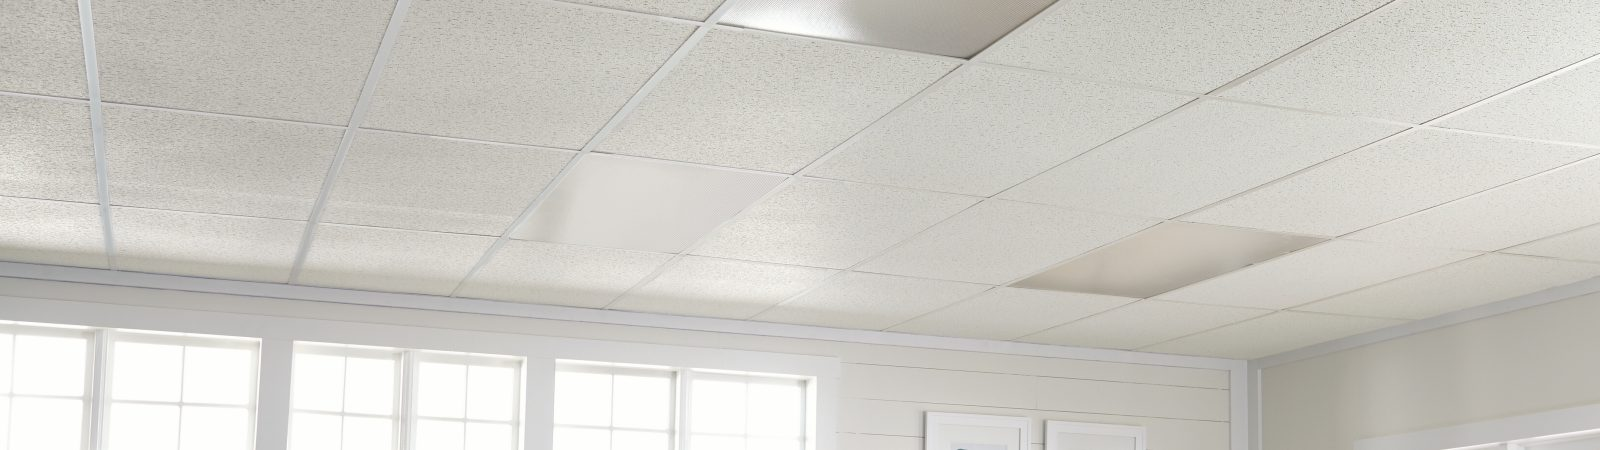 Textured Look Ceilings Armstrong Ceilings Residential